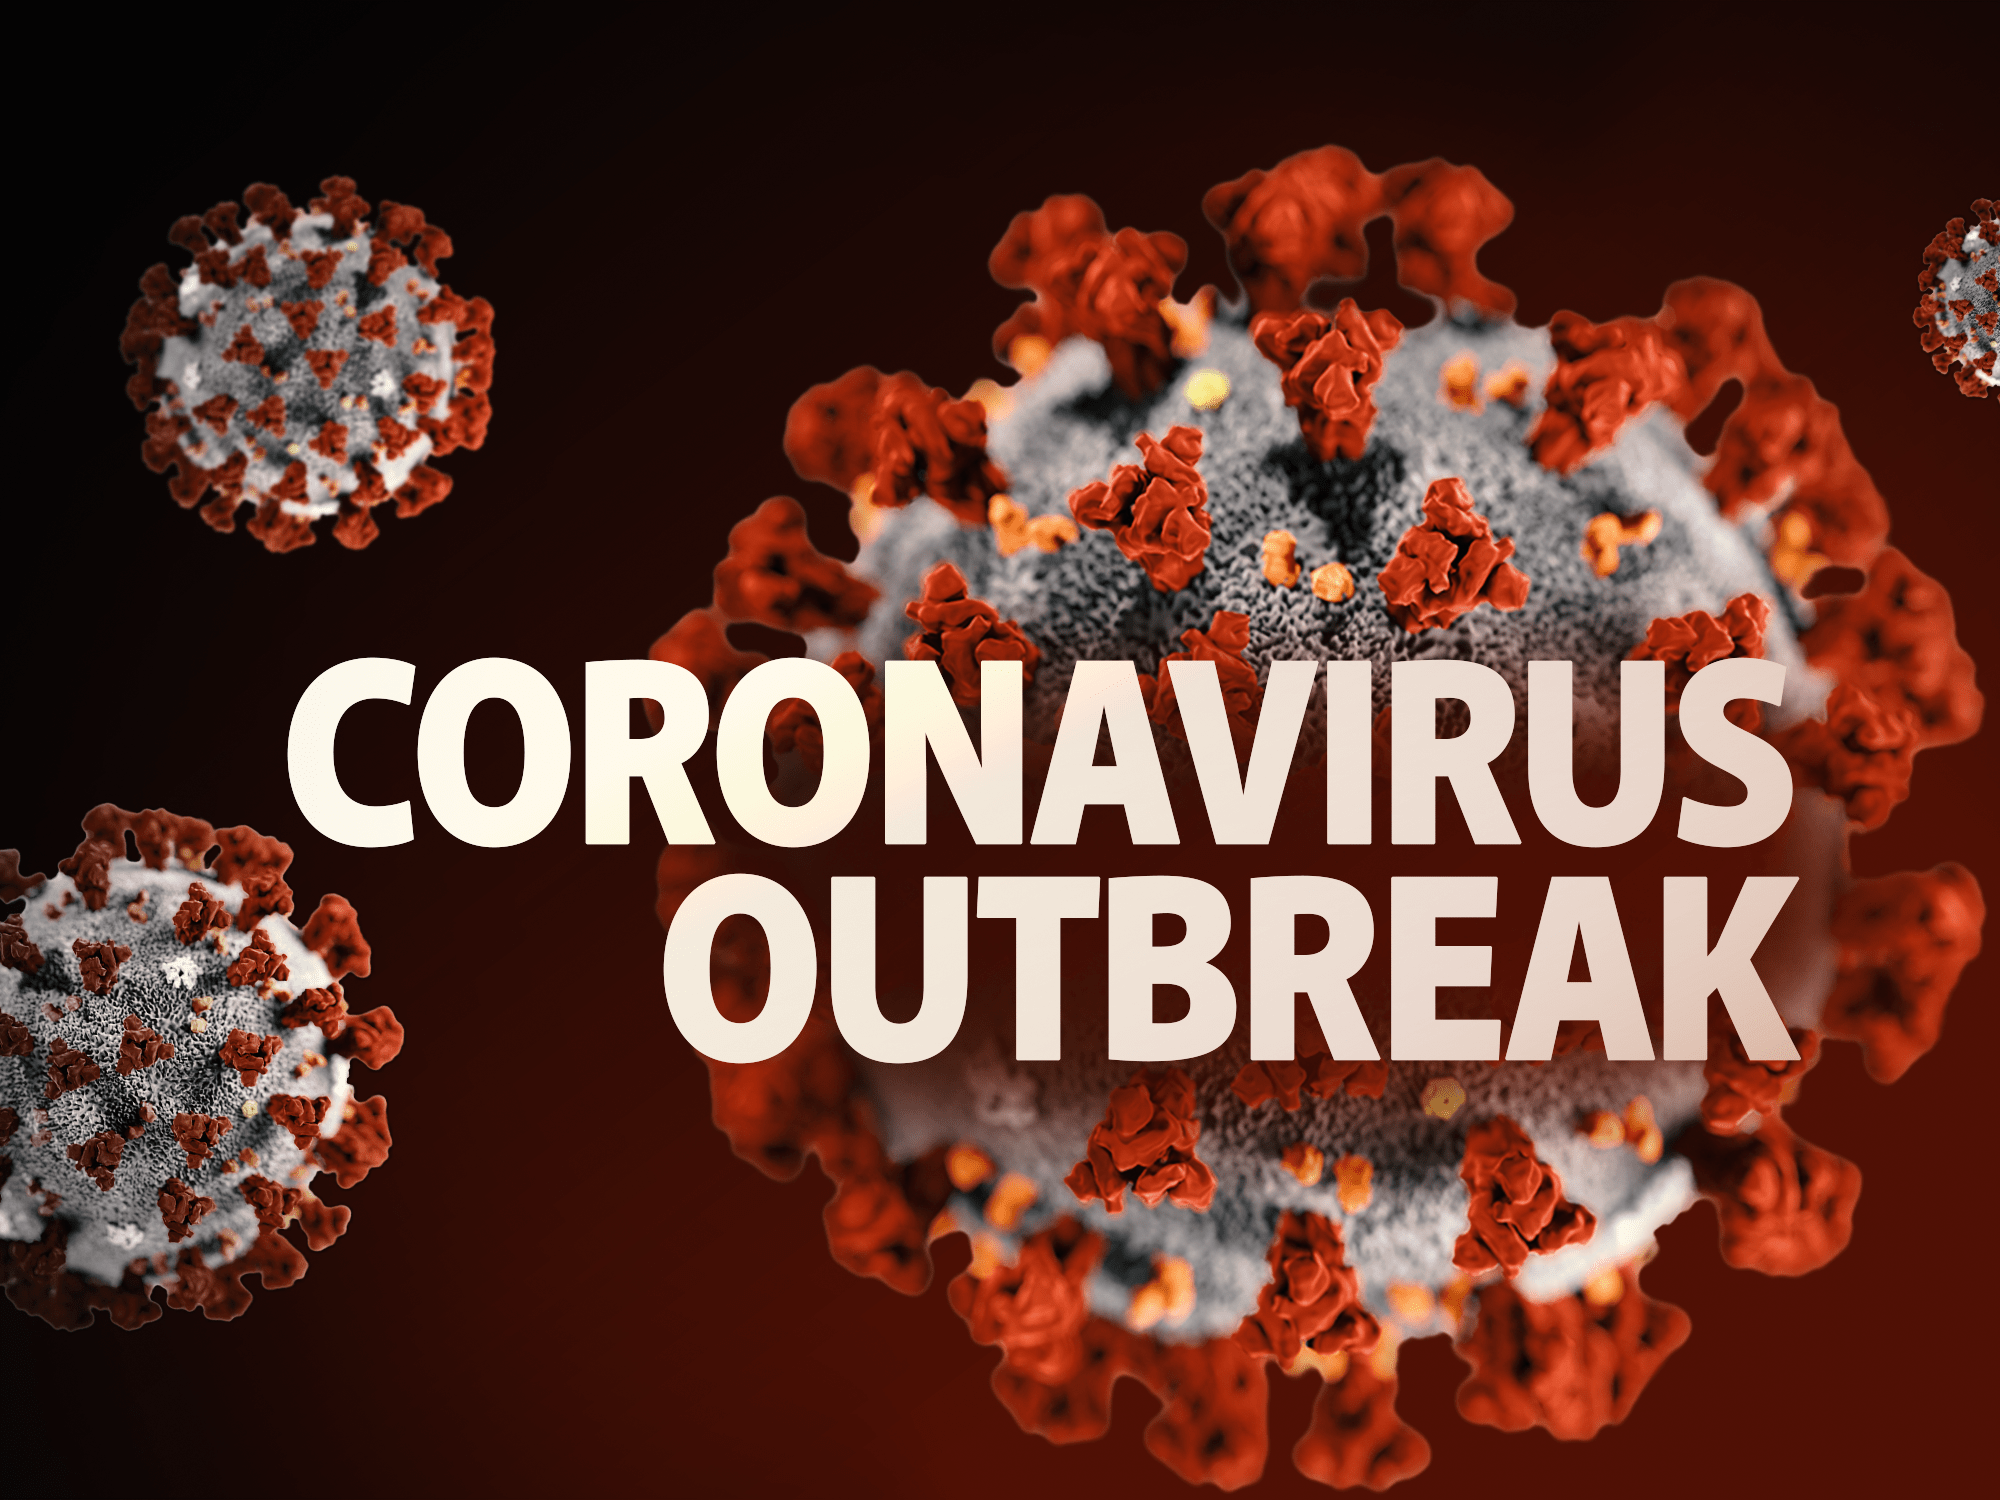 List of local events canceled due to virus outbreak | RochesterFirst